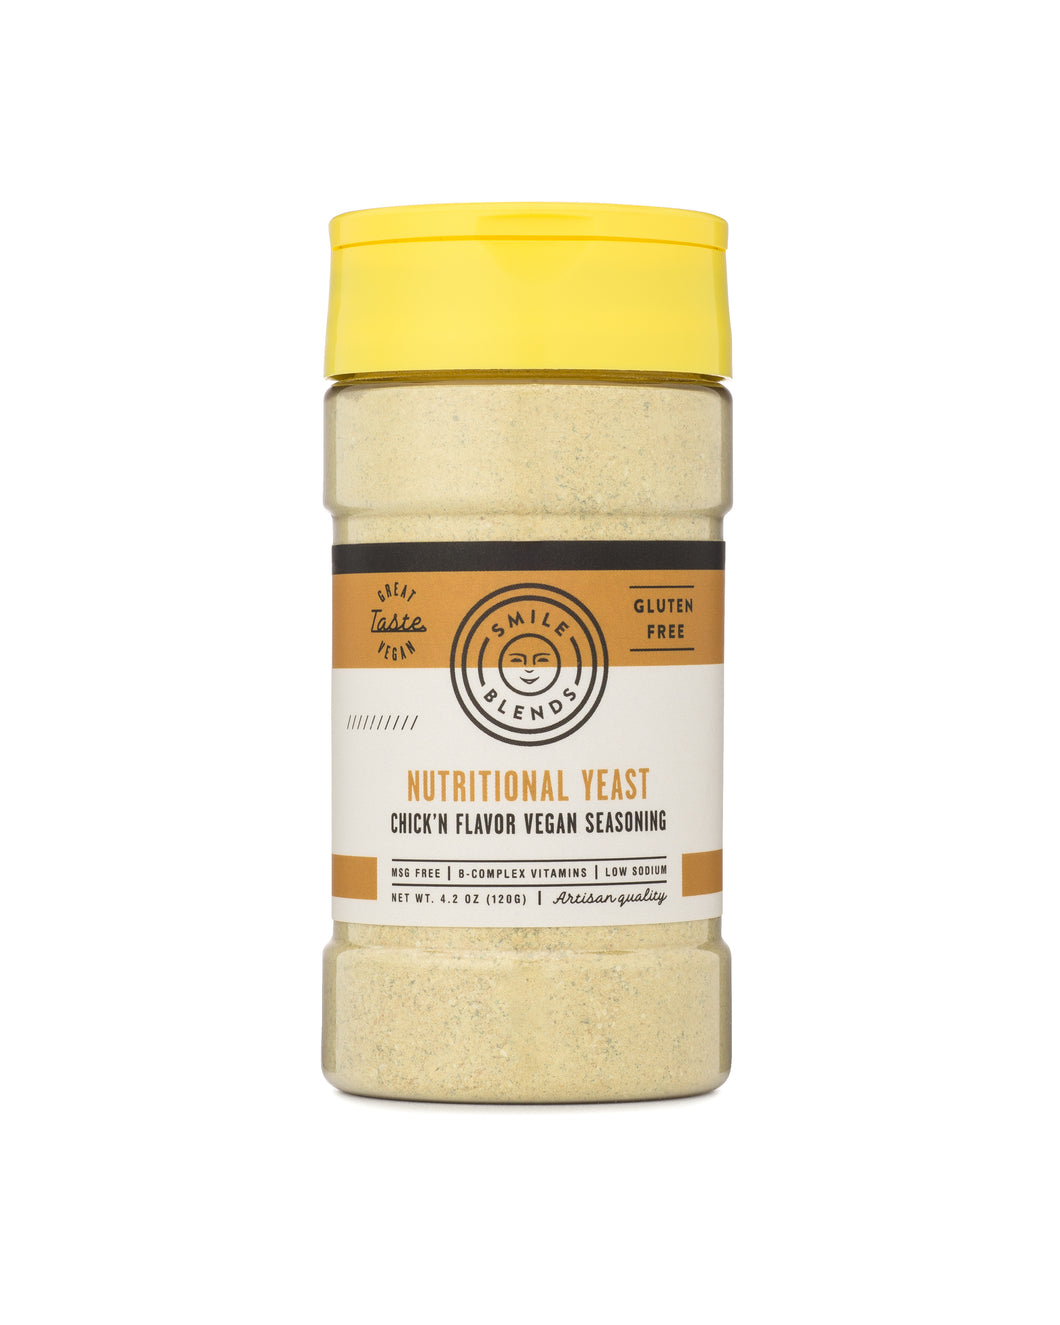 Chick'n Flavored Nutritional Yeast